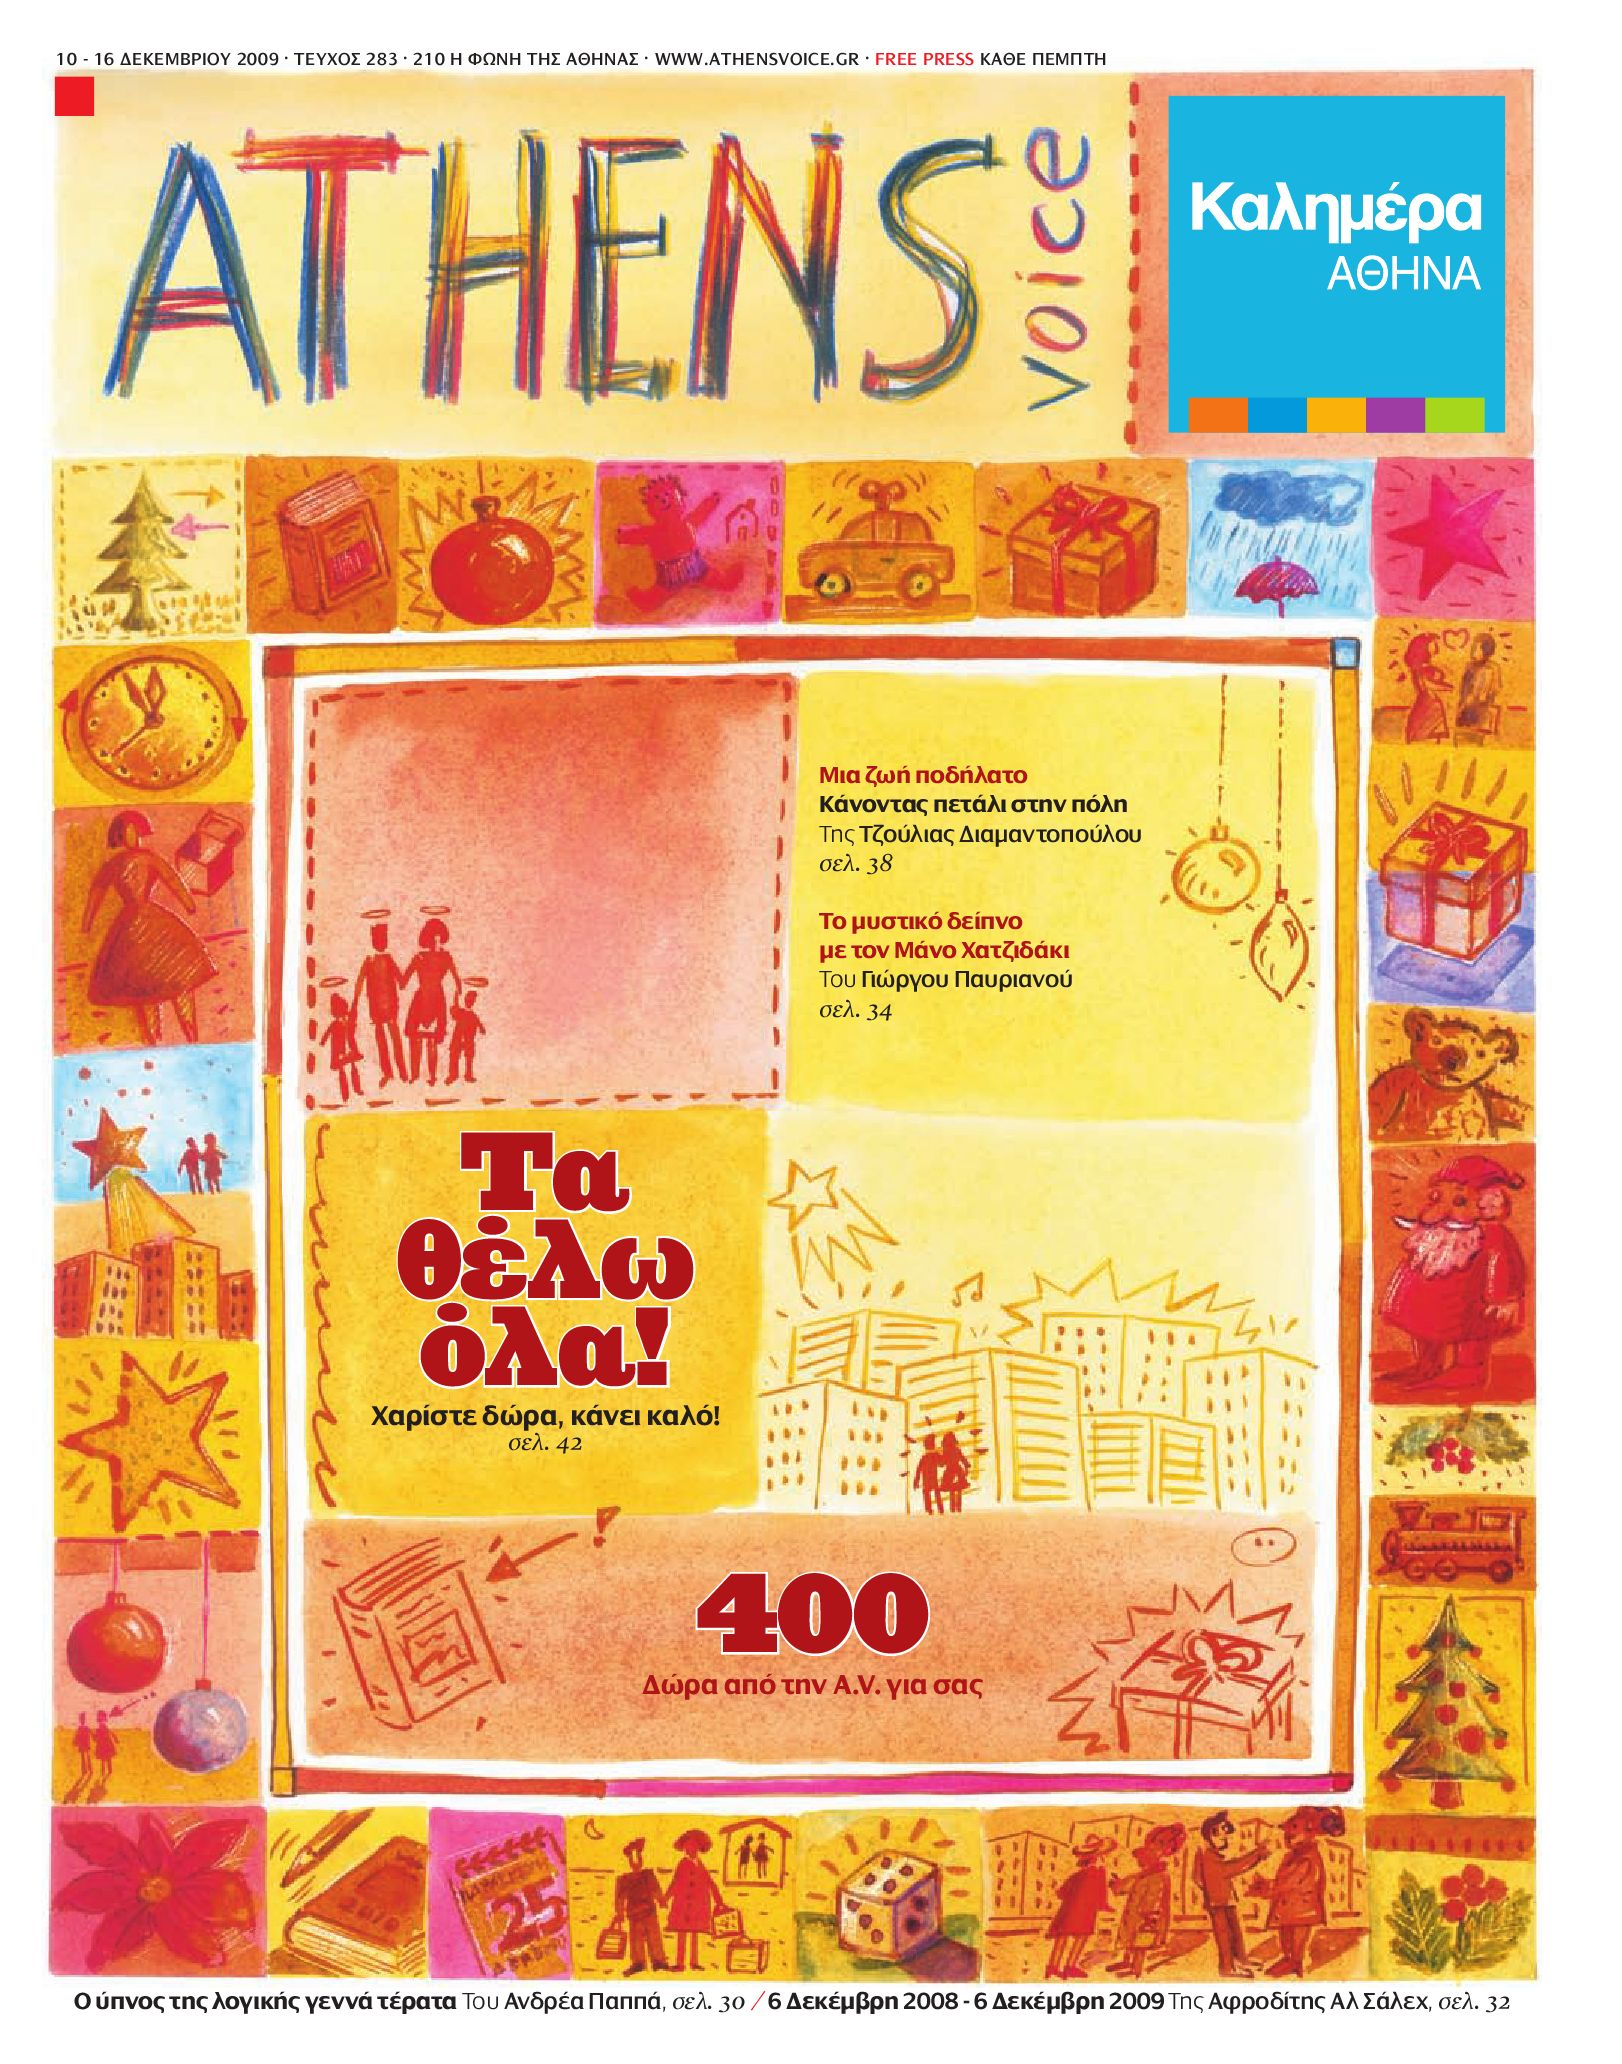 Athens Voice 283 by Athens Voice - issuu 82c34143964